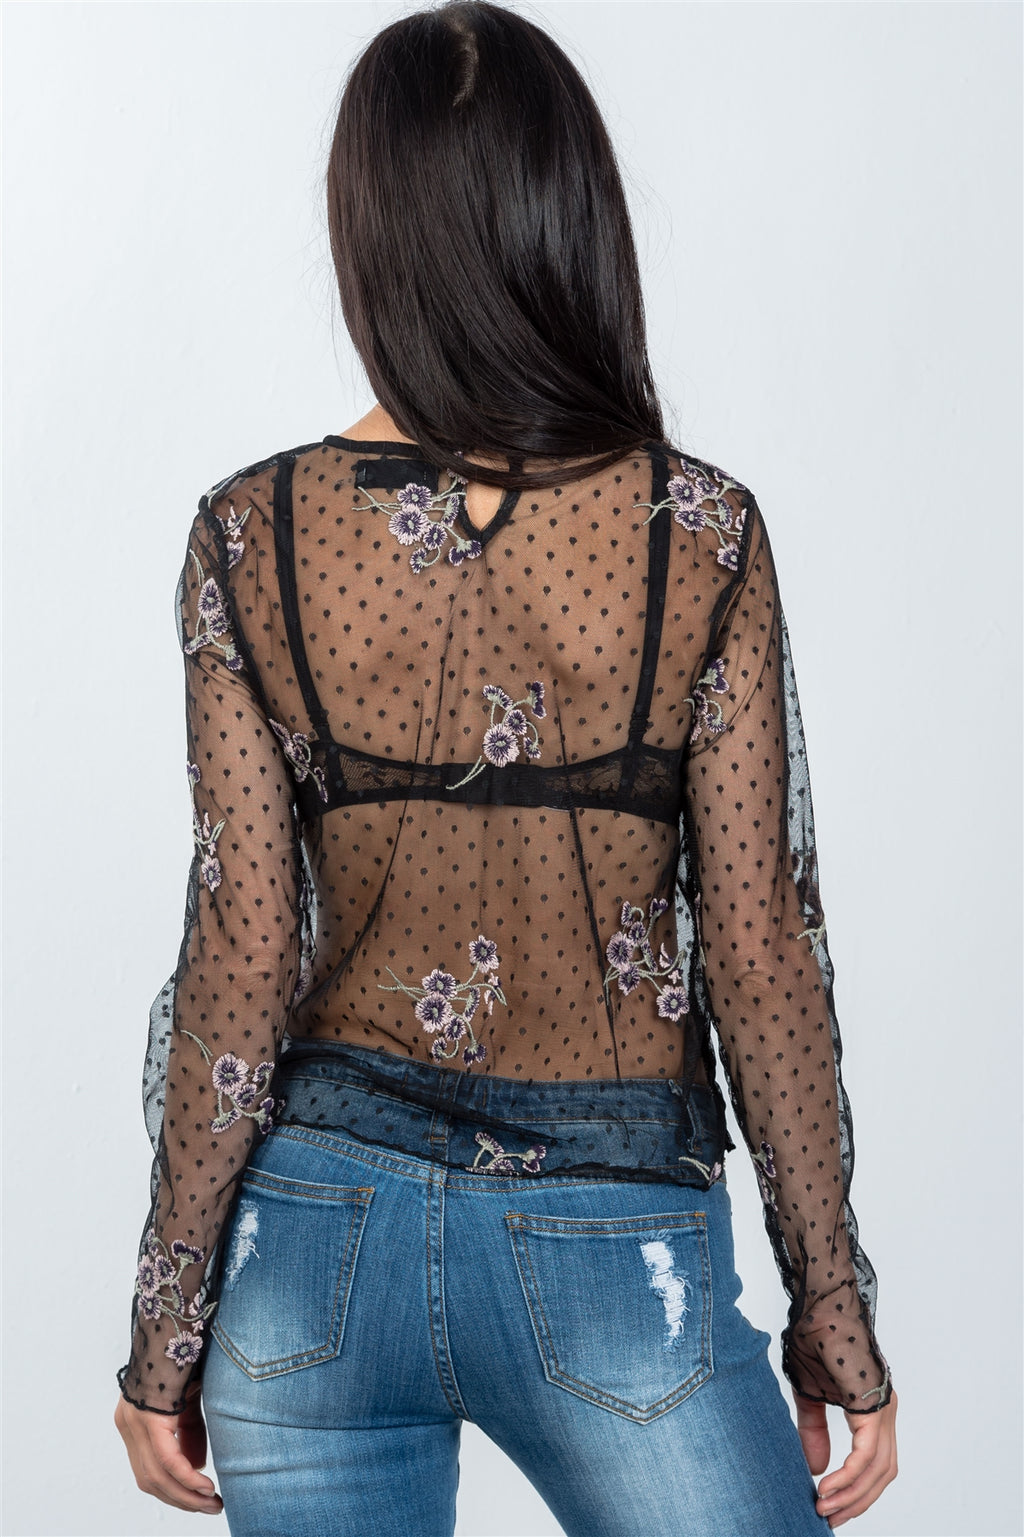 Ladies fashion floral embroidered sheer polka dot boho top